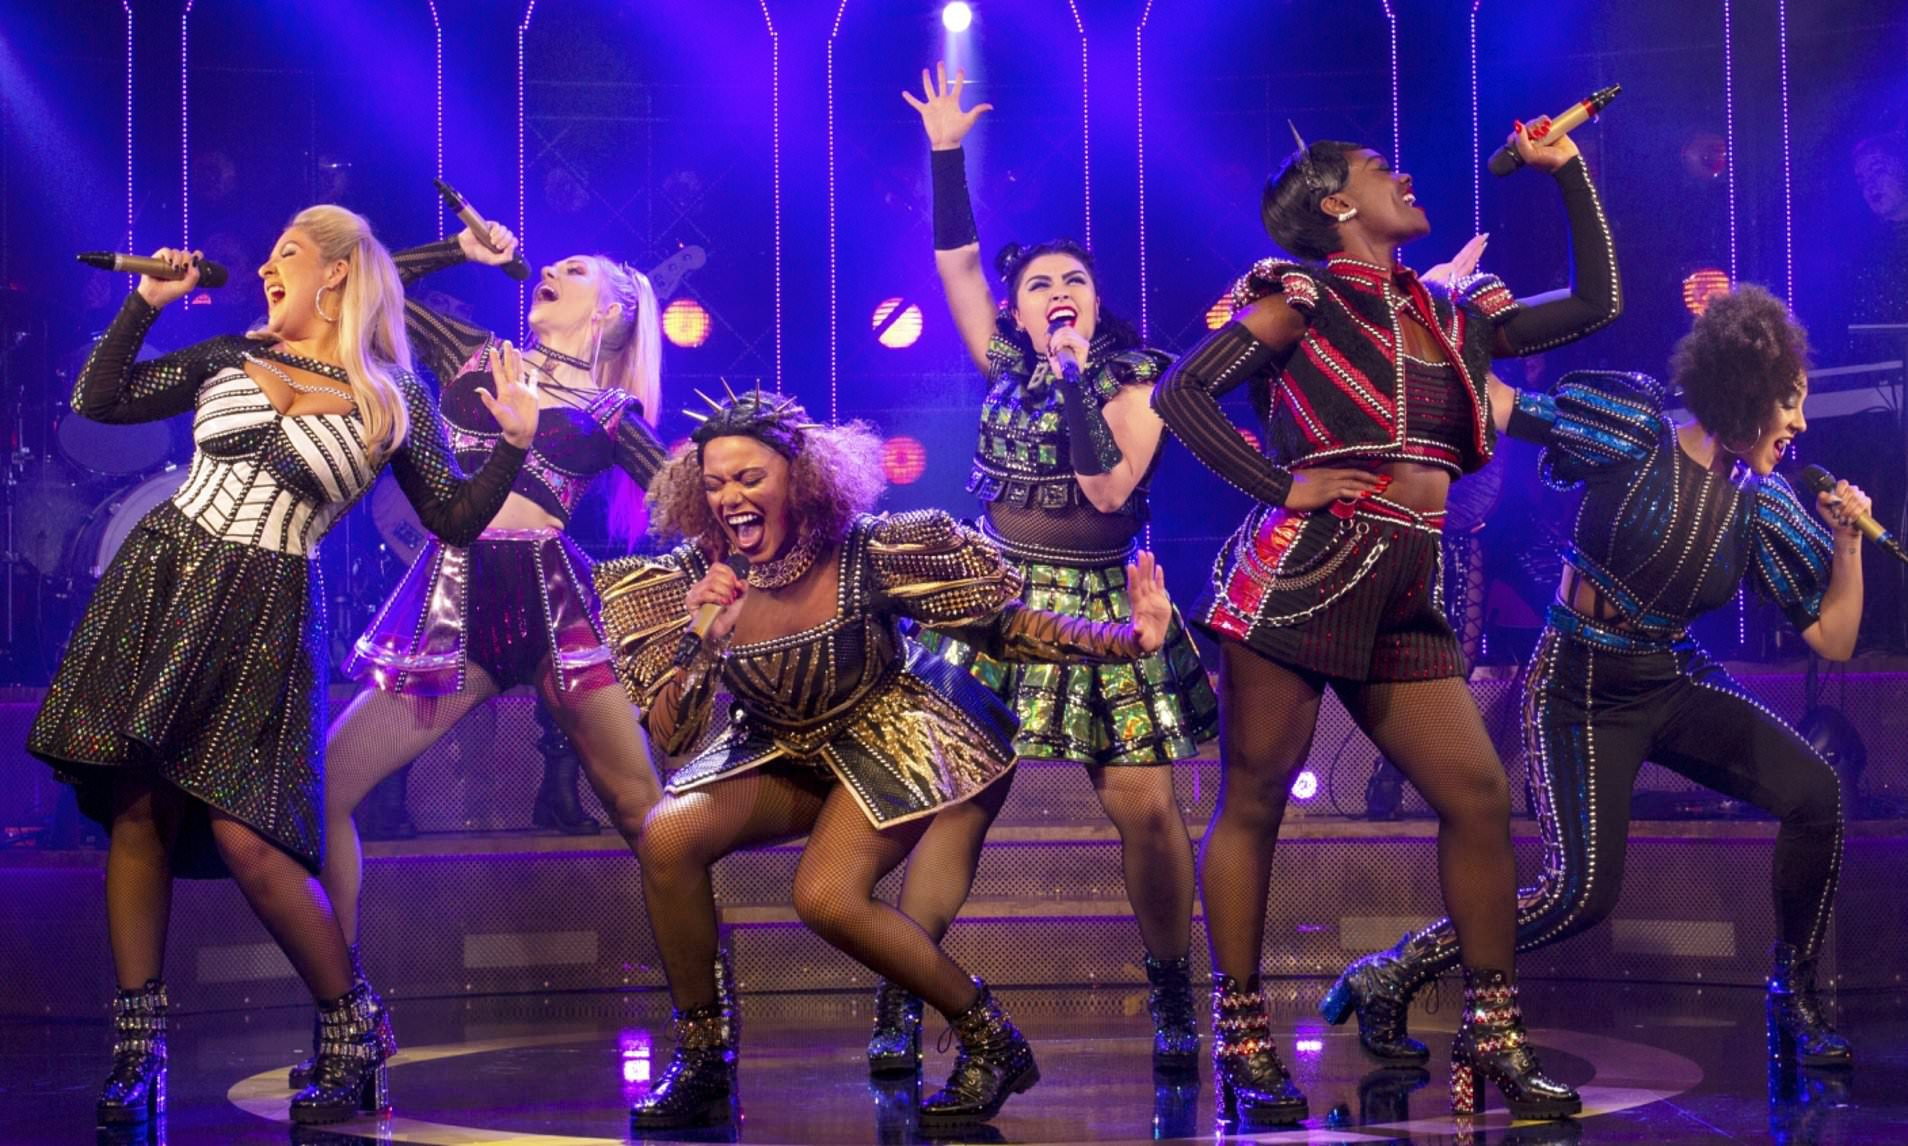 The 'Six' Casting Director on How to Get Cast in a Musical